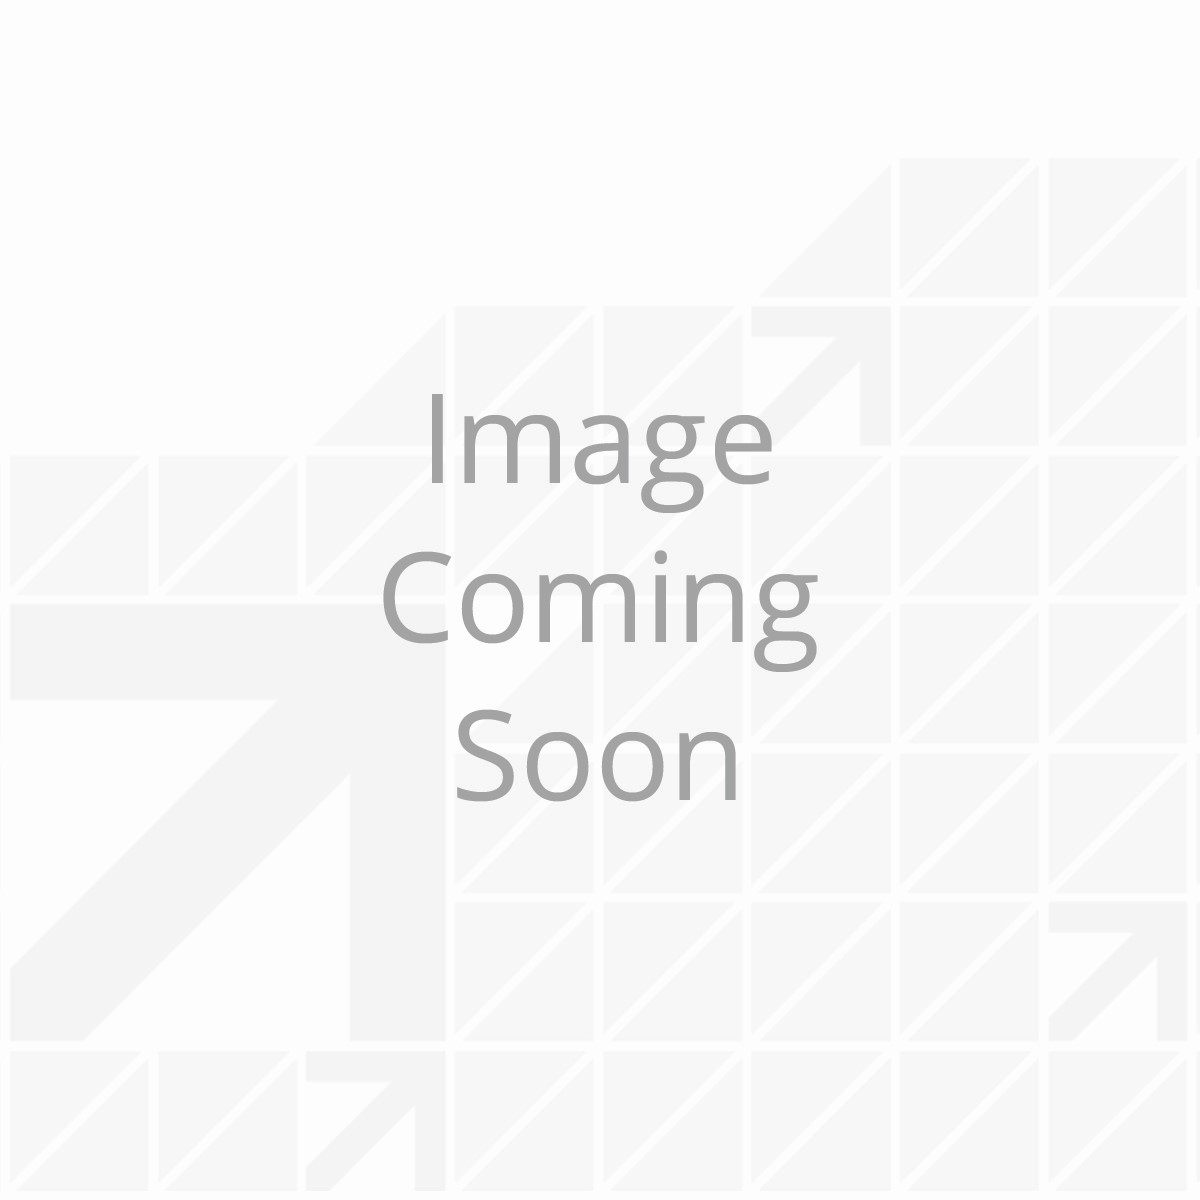 182690_Pulley-Support_001